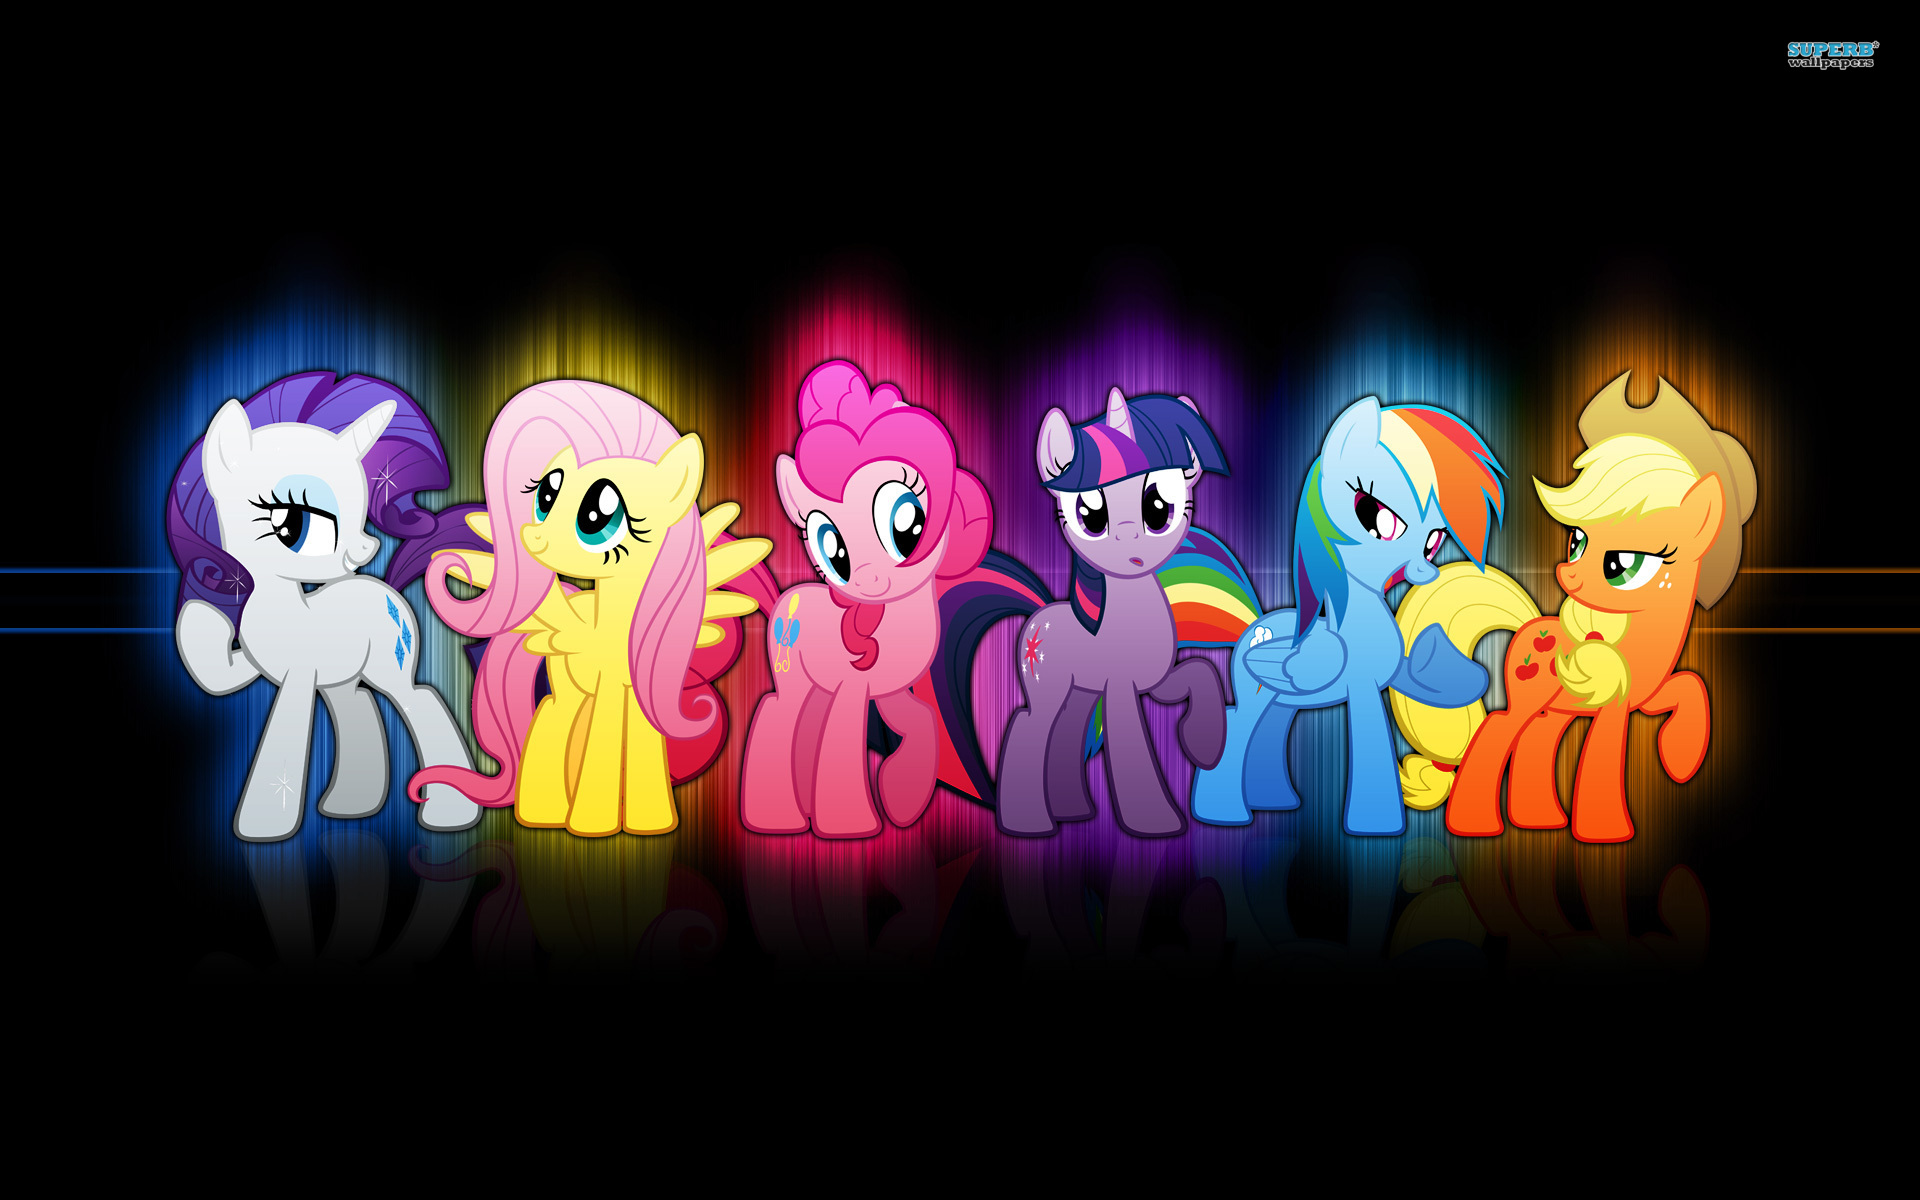 mlp wallpapers